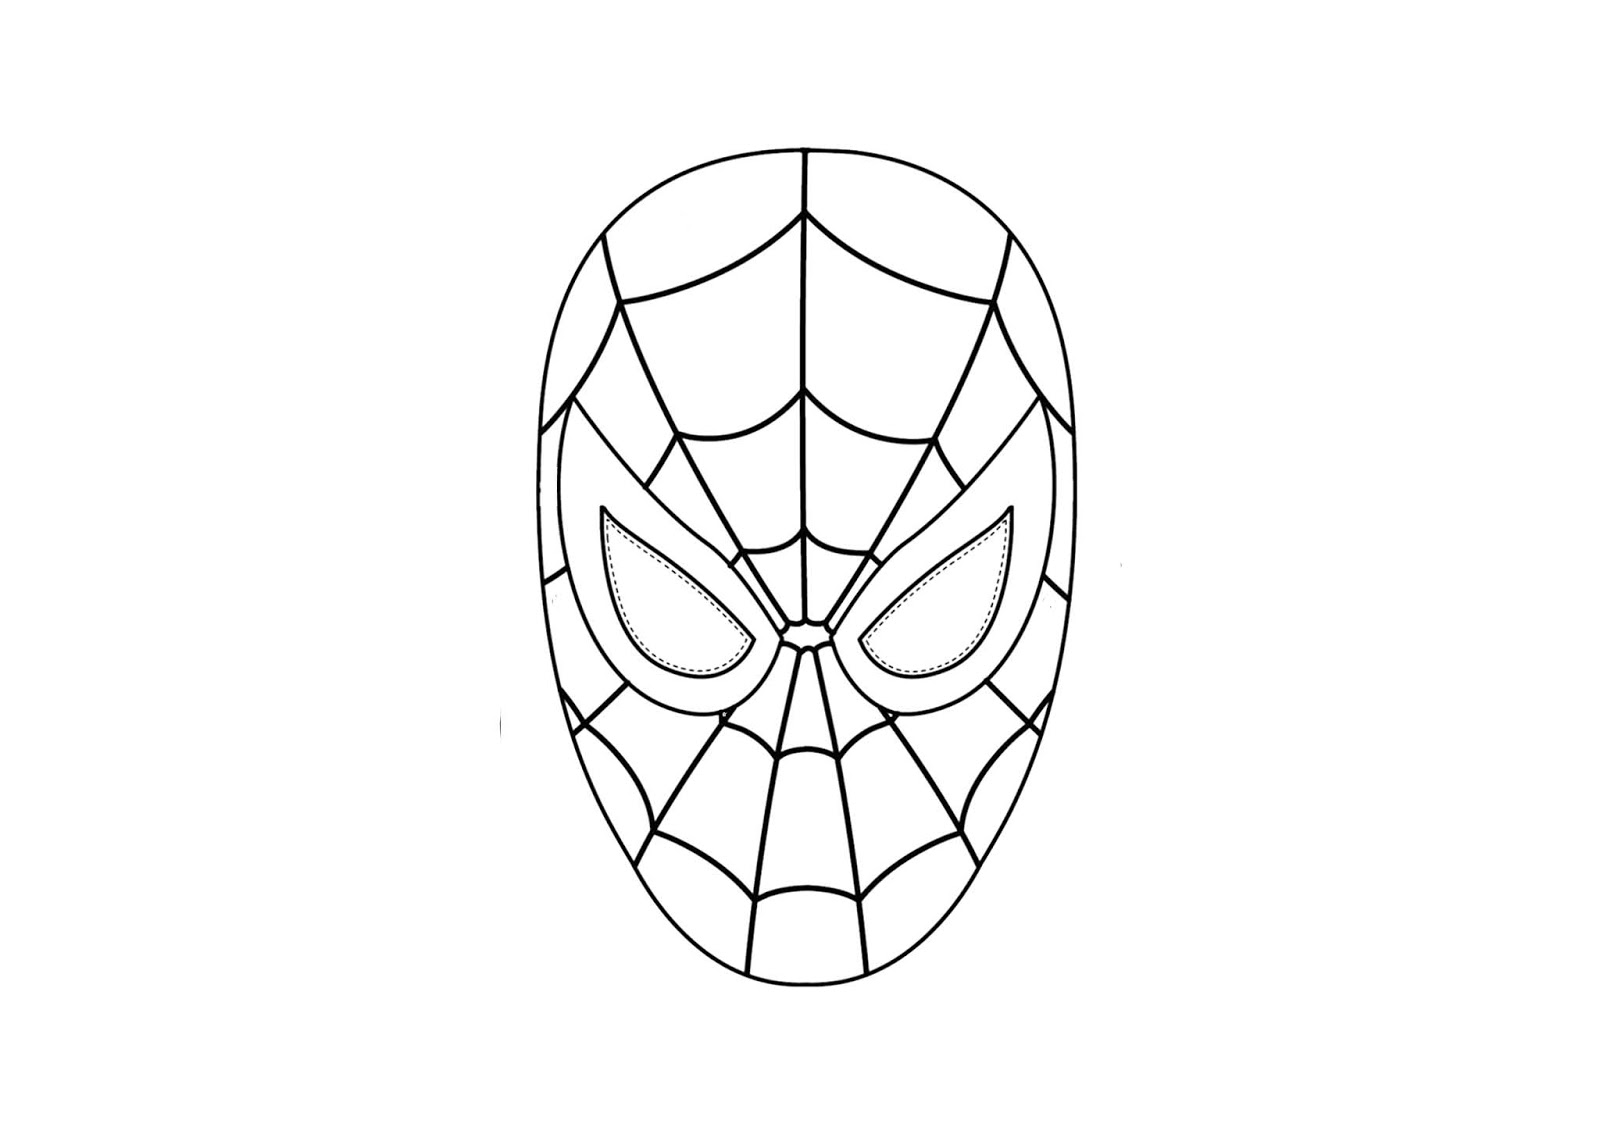 How To Draw Spiderman Easy Coloring Pages For Kids